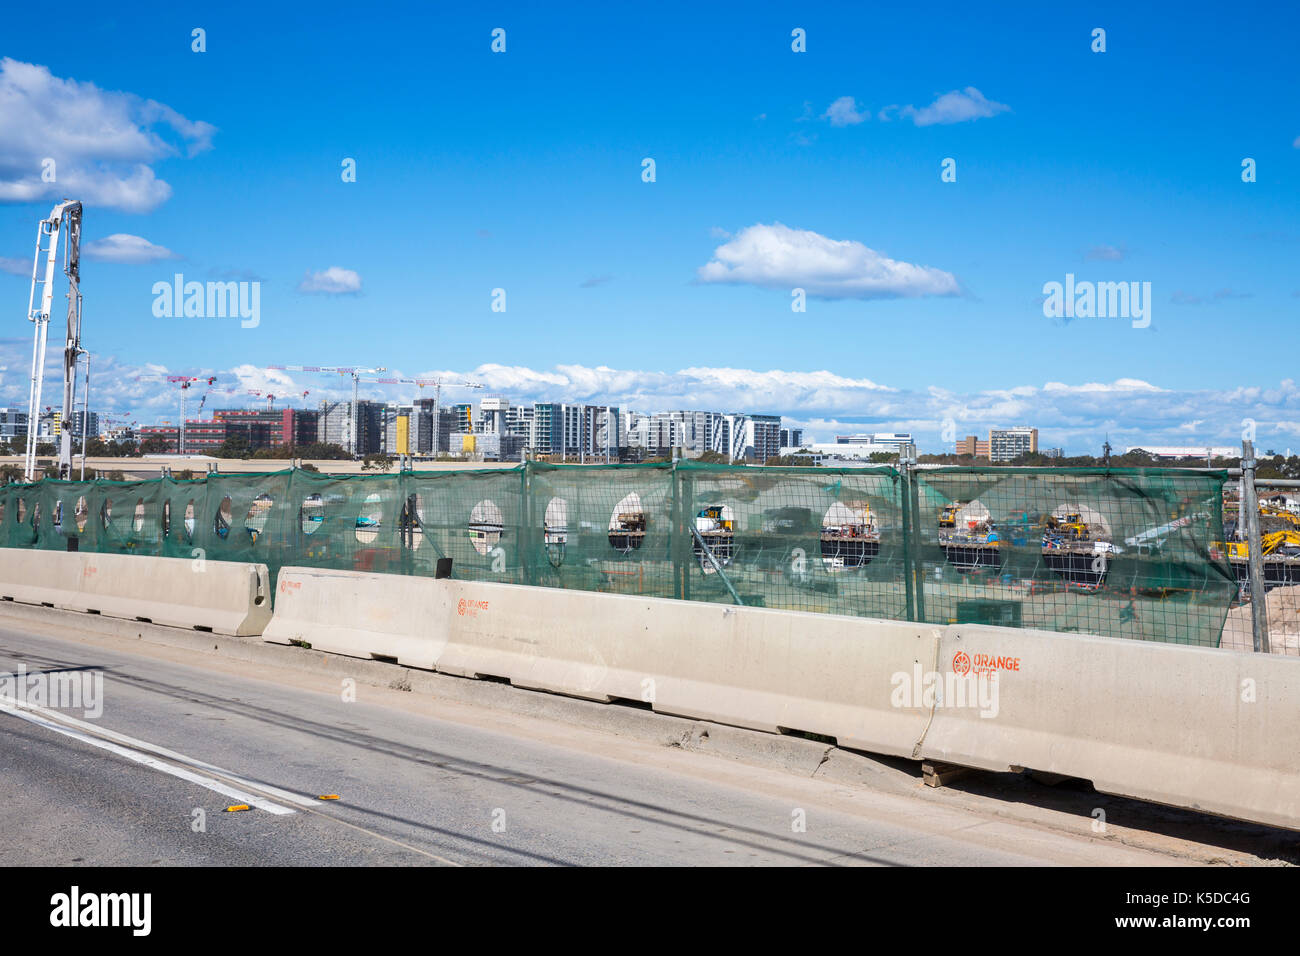 M5 Road Stock Photos & M5 Road Stock Images - Alamy